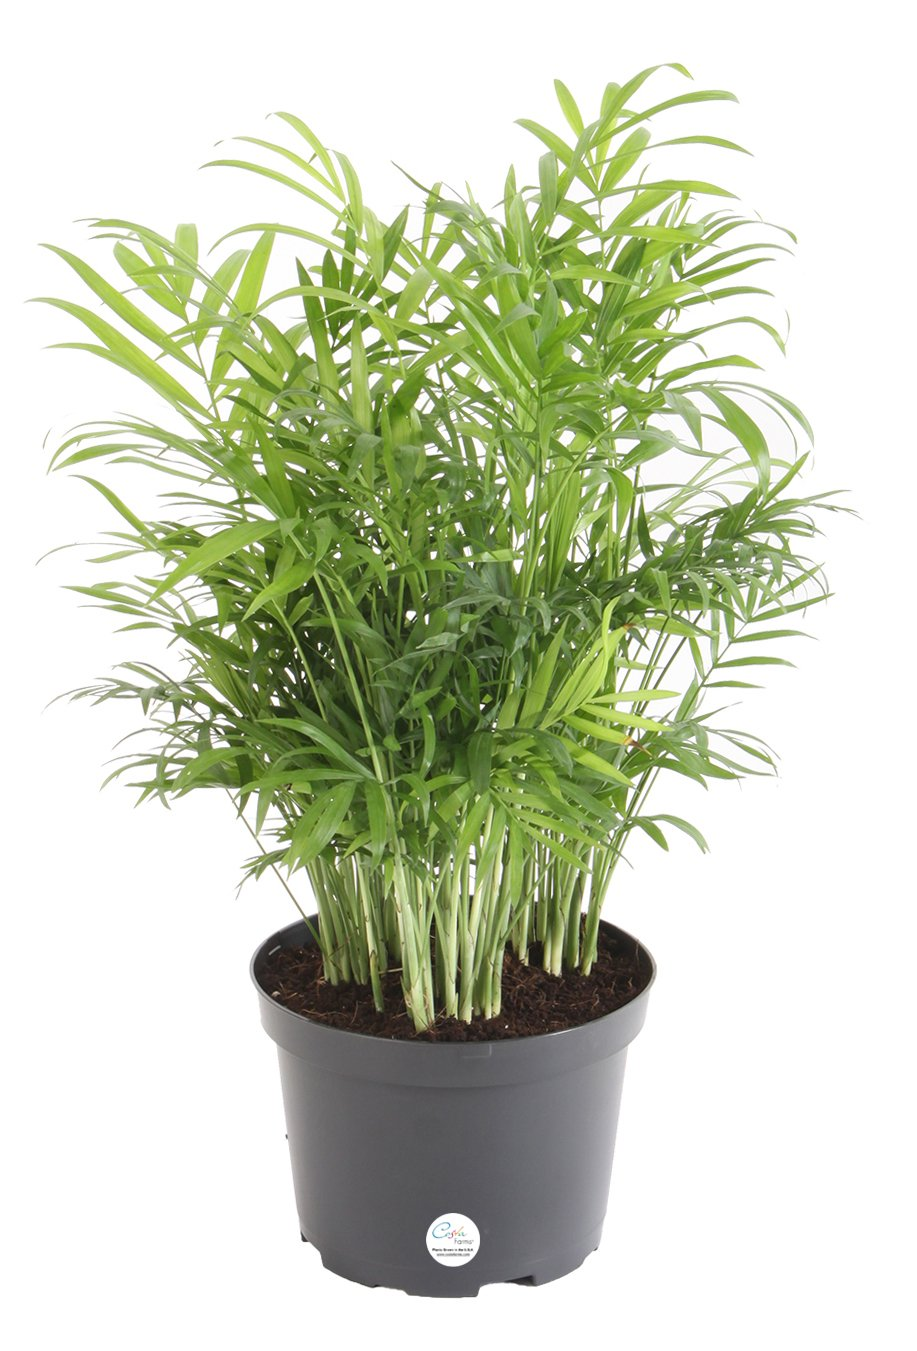 Costa Farms Neanthebella Parlor Palm Live Indoor Plant, 14-Inch Neathebella, Ships in Grower's Pot